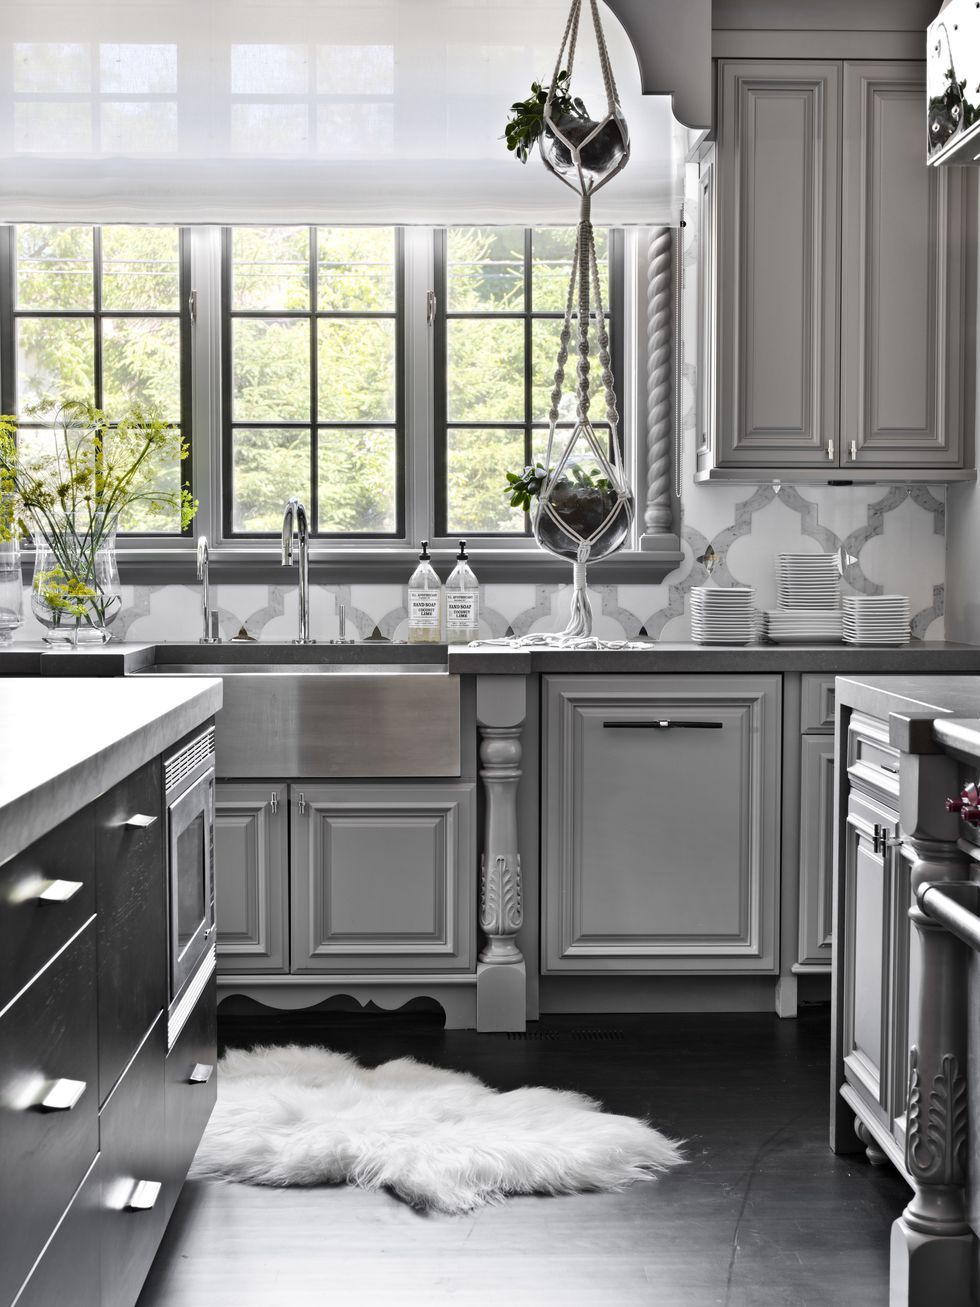 7 Gorgeous Kitchen Tile Backsplashes - Best Kitchen Tile Ideas